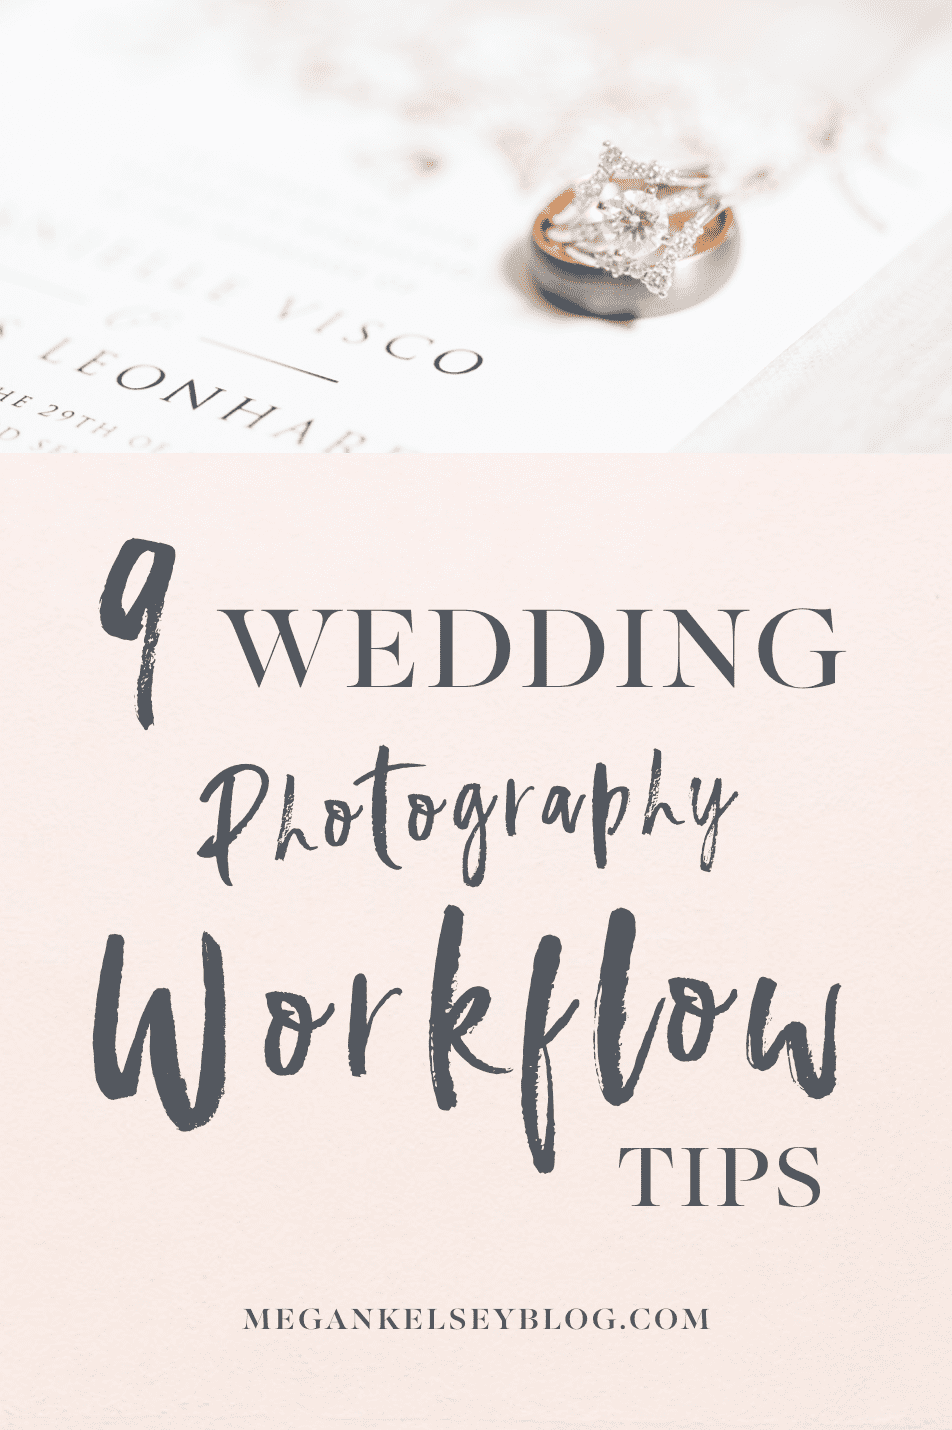 Wedding Photography Workflow Tips